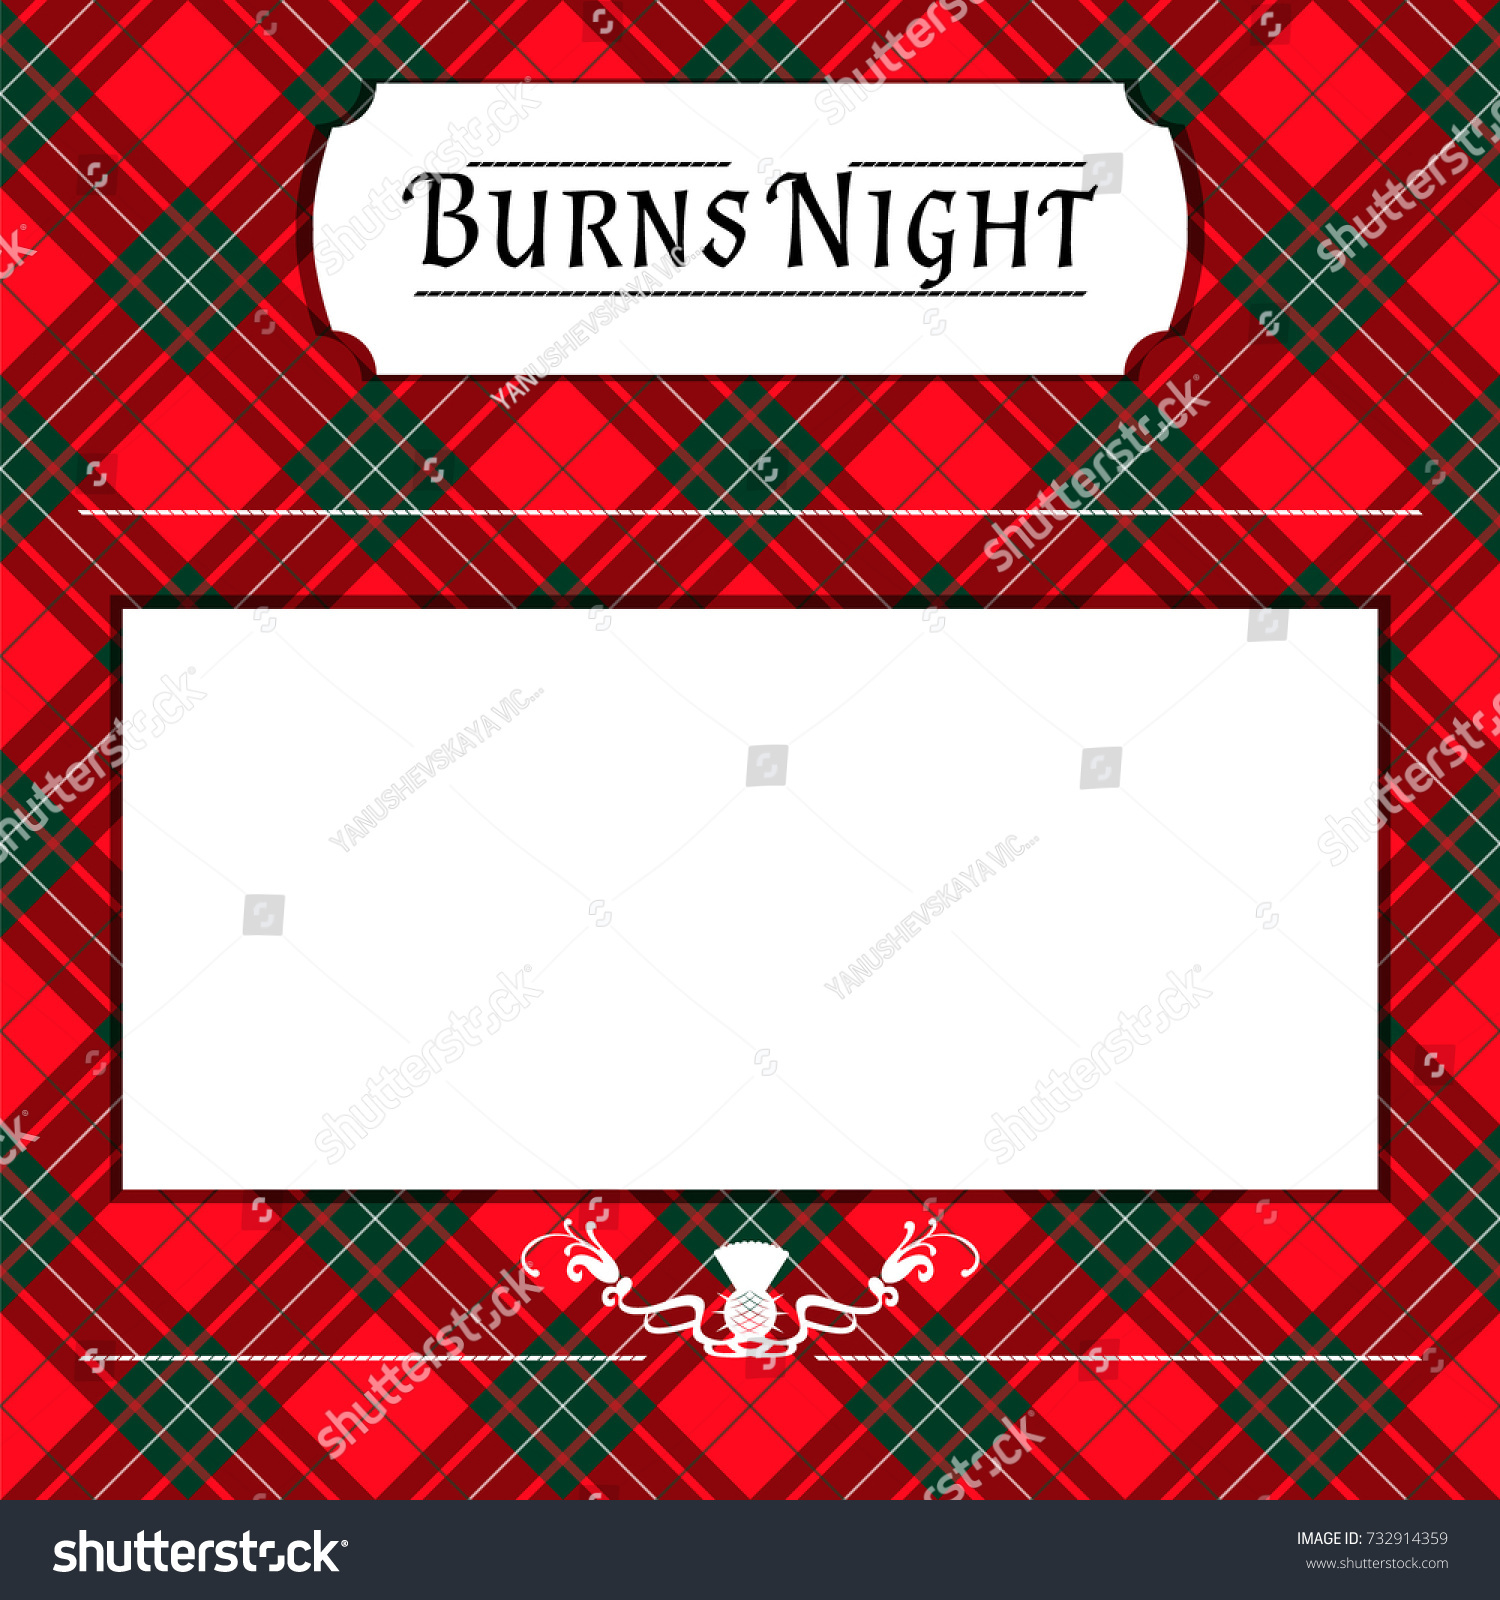 Burns Night Card On Tartan Background Stock Vector (Royalty Free ...